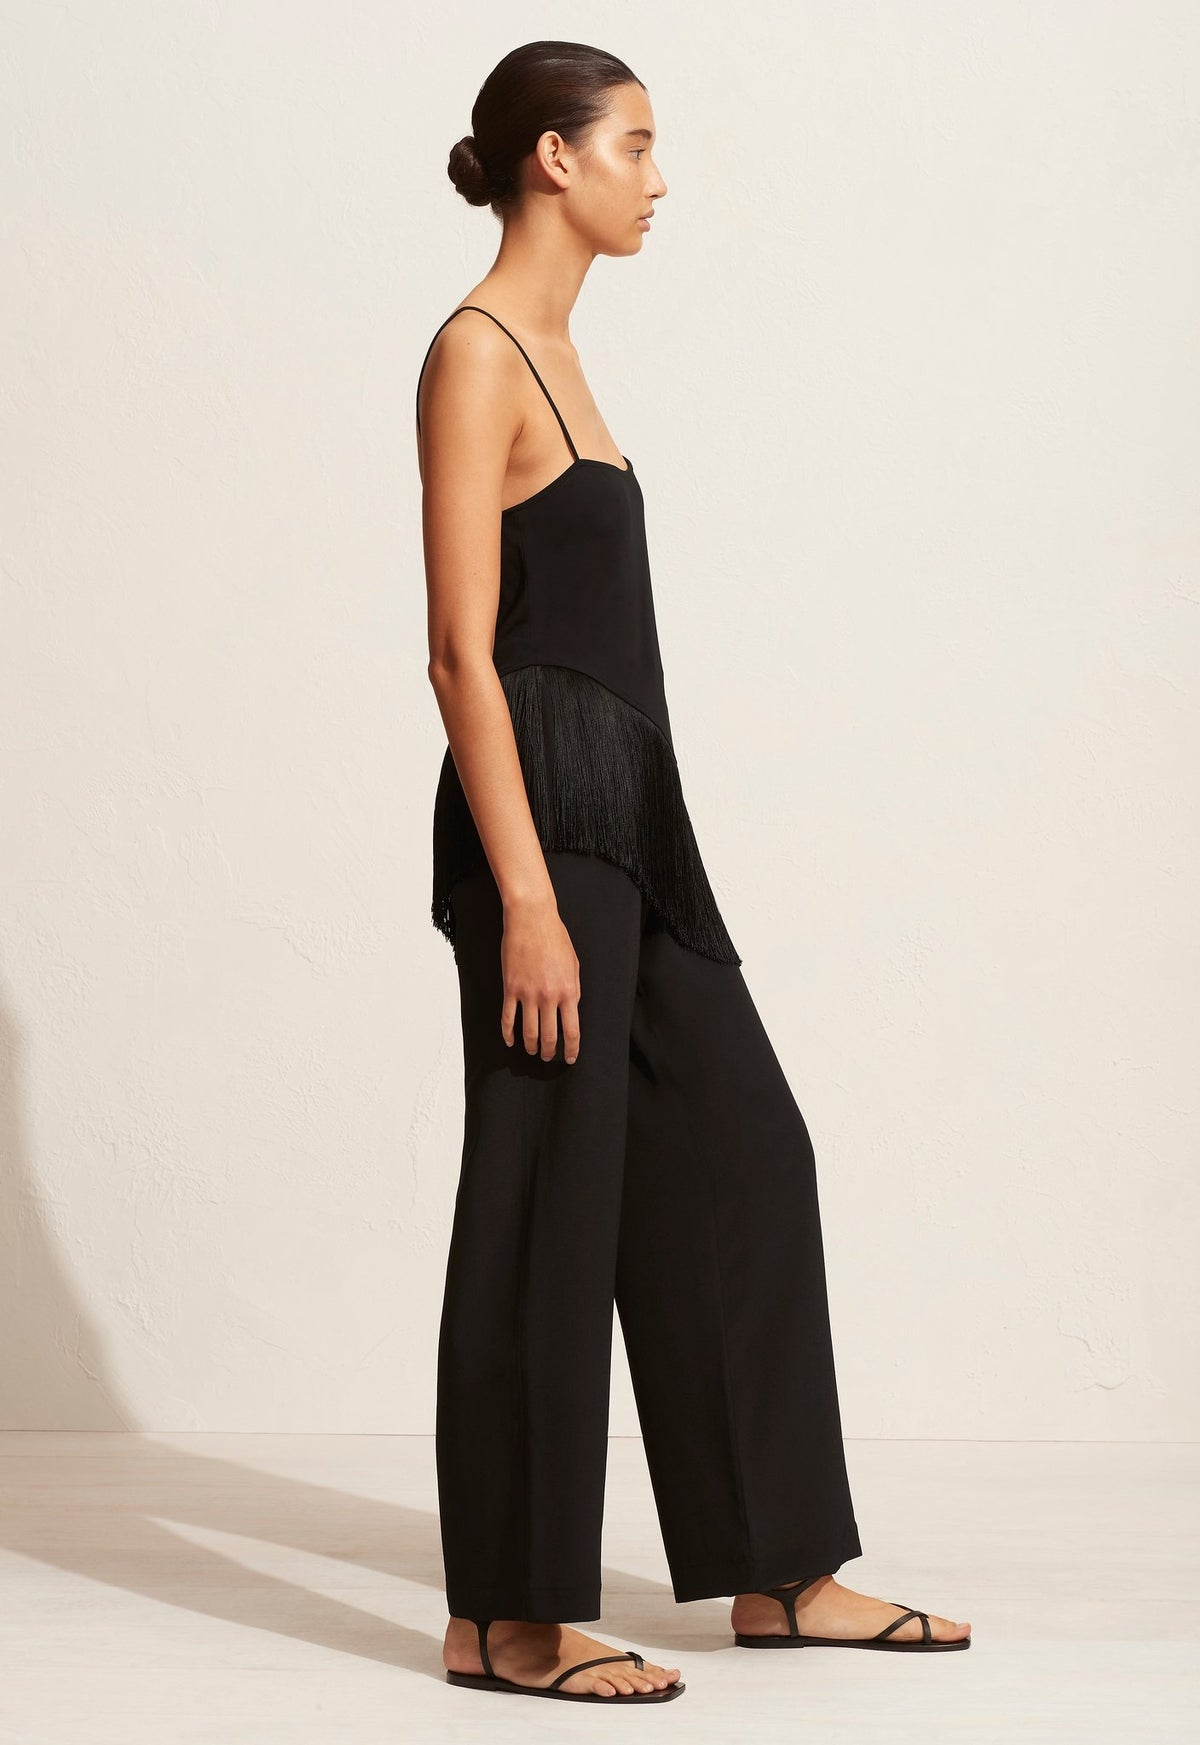 The Fringed Camisole